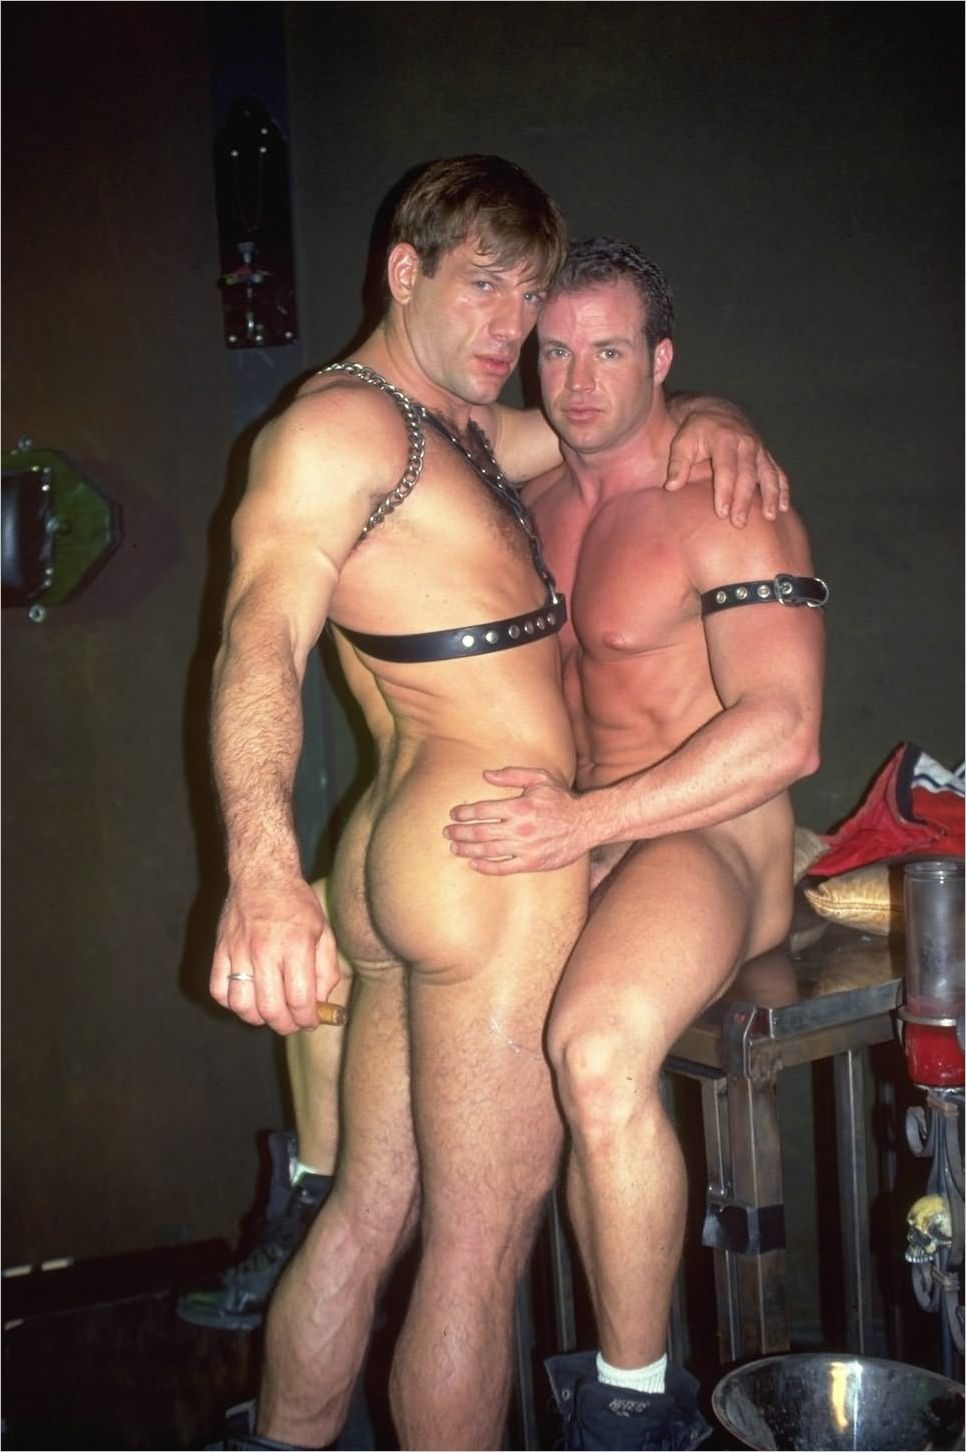 from King free gay leather sex video